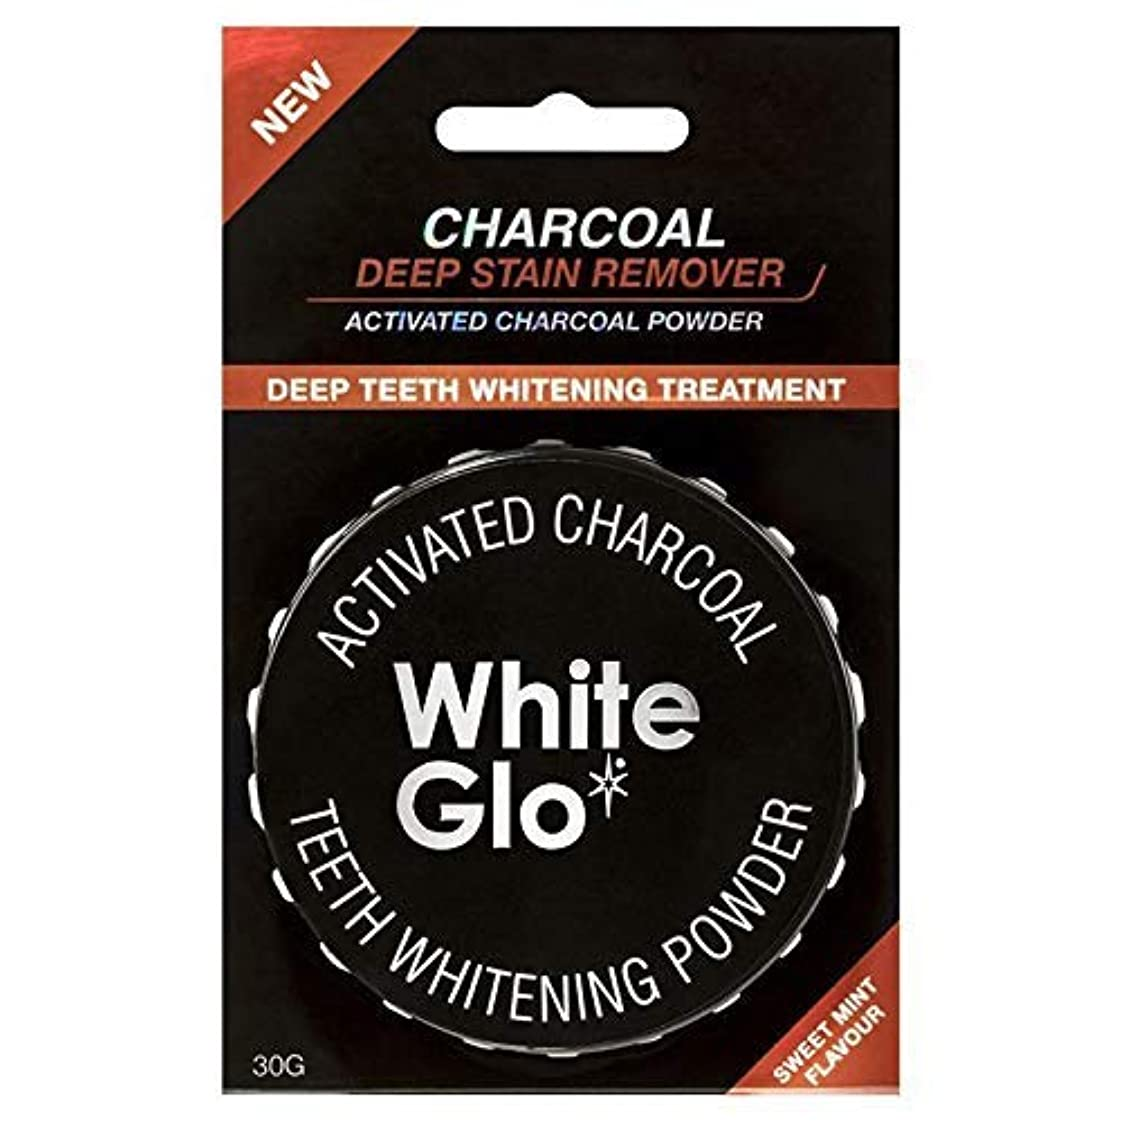 鼻火山に対してTeeth Whitening Systems White Glo Activated Charcoal Teeth Whitening Powder 30g Australia / システムを白くする歯を白くする歯の粉...